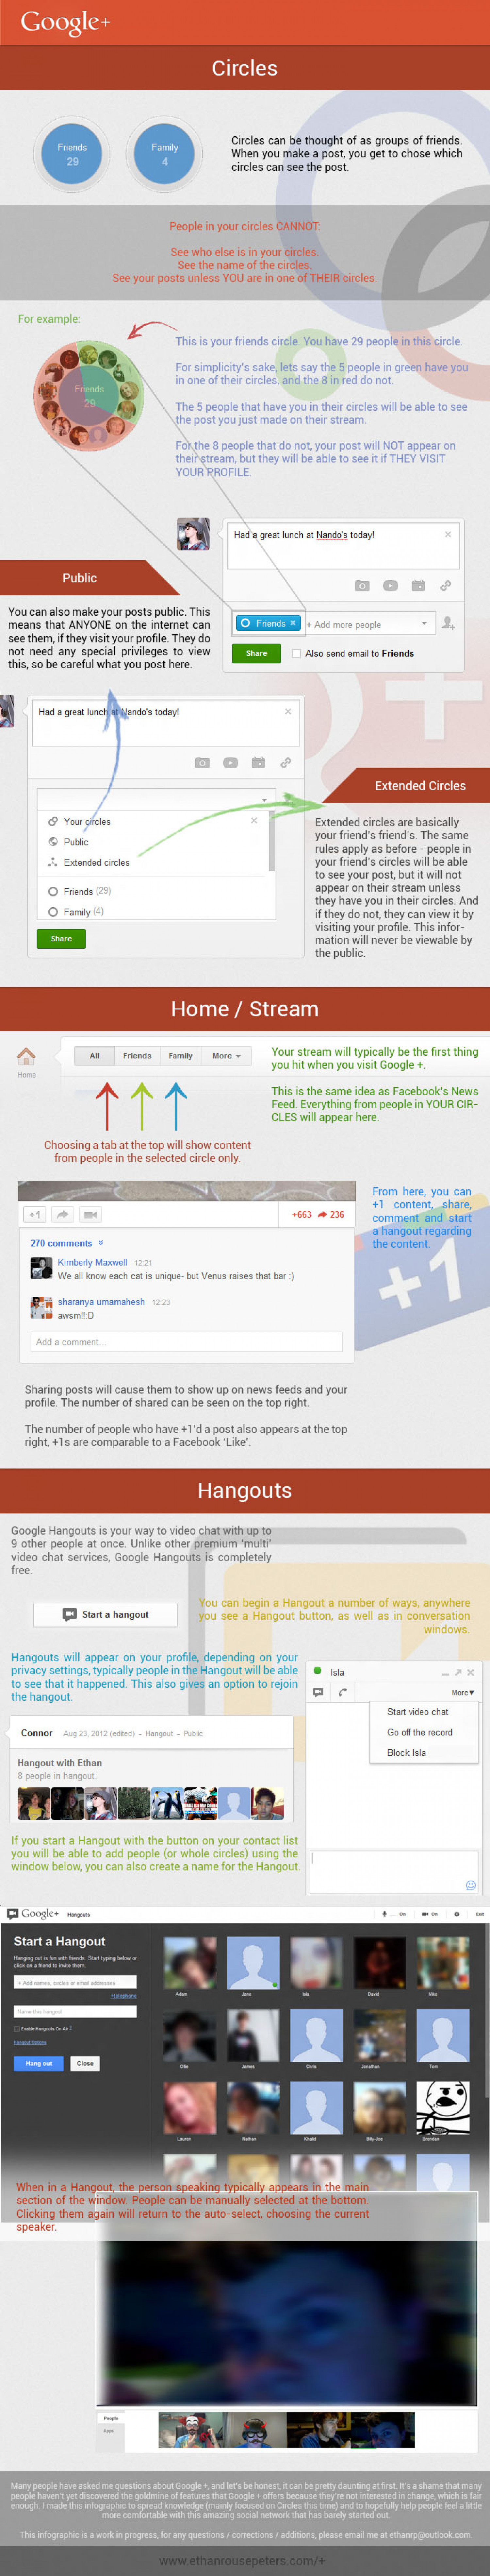 Google Plus Circles tutorial Infographic